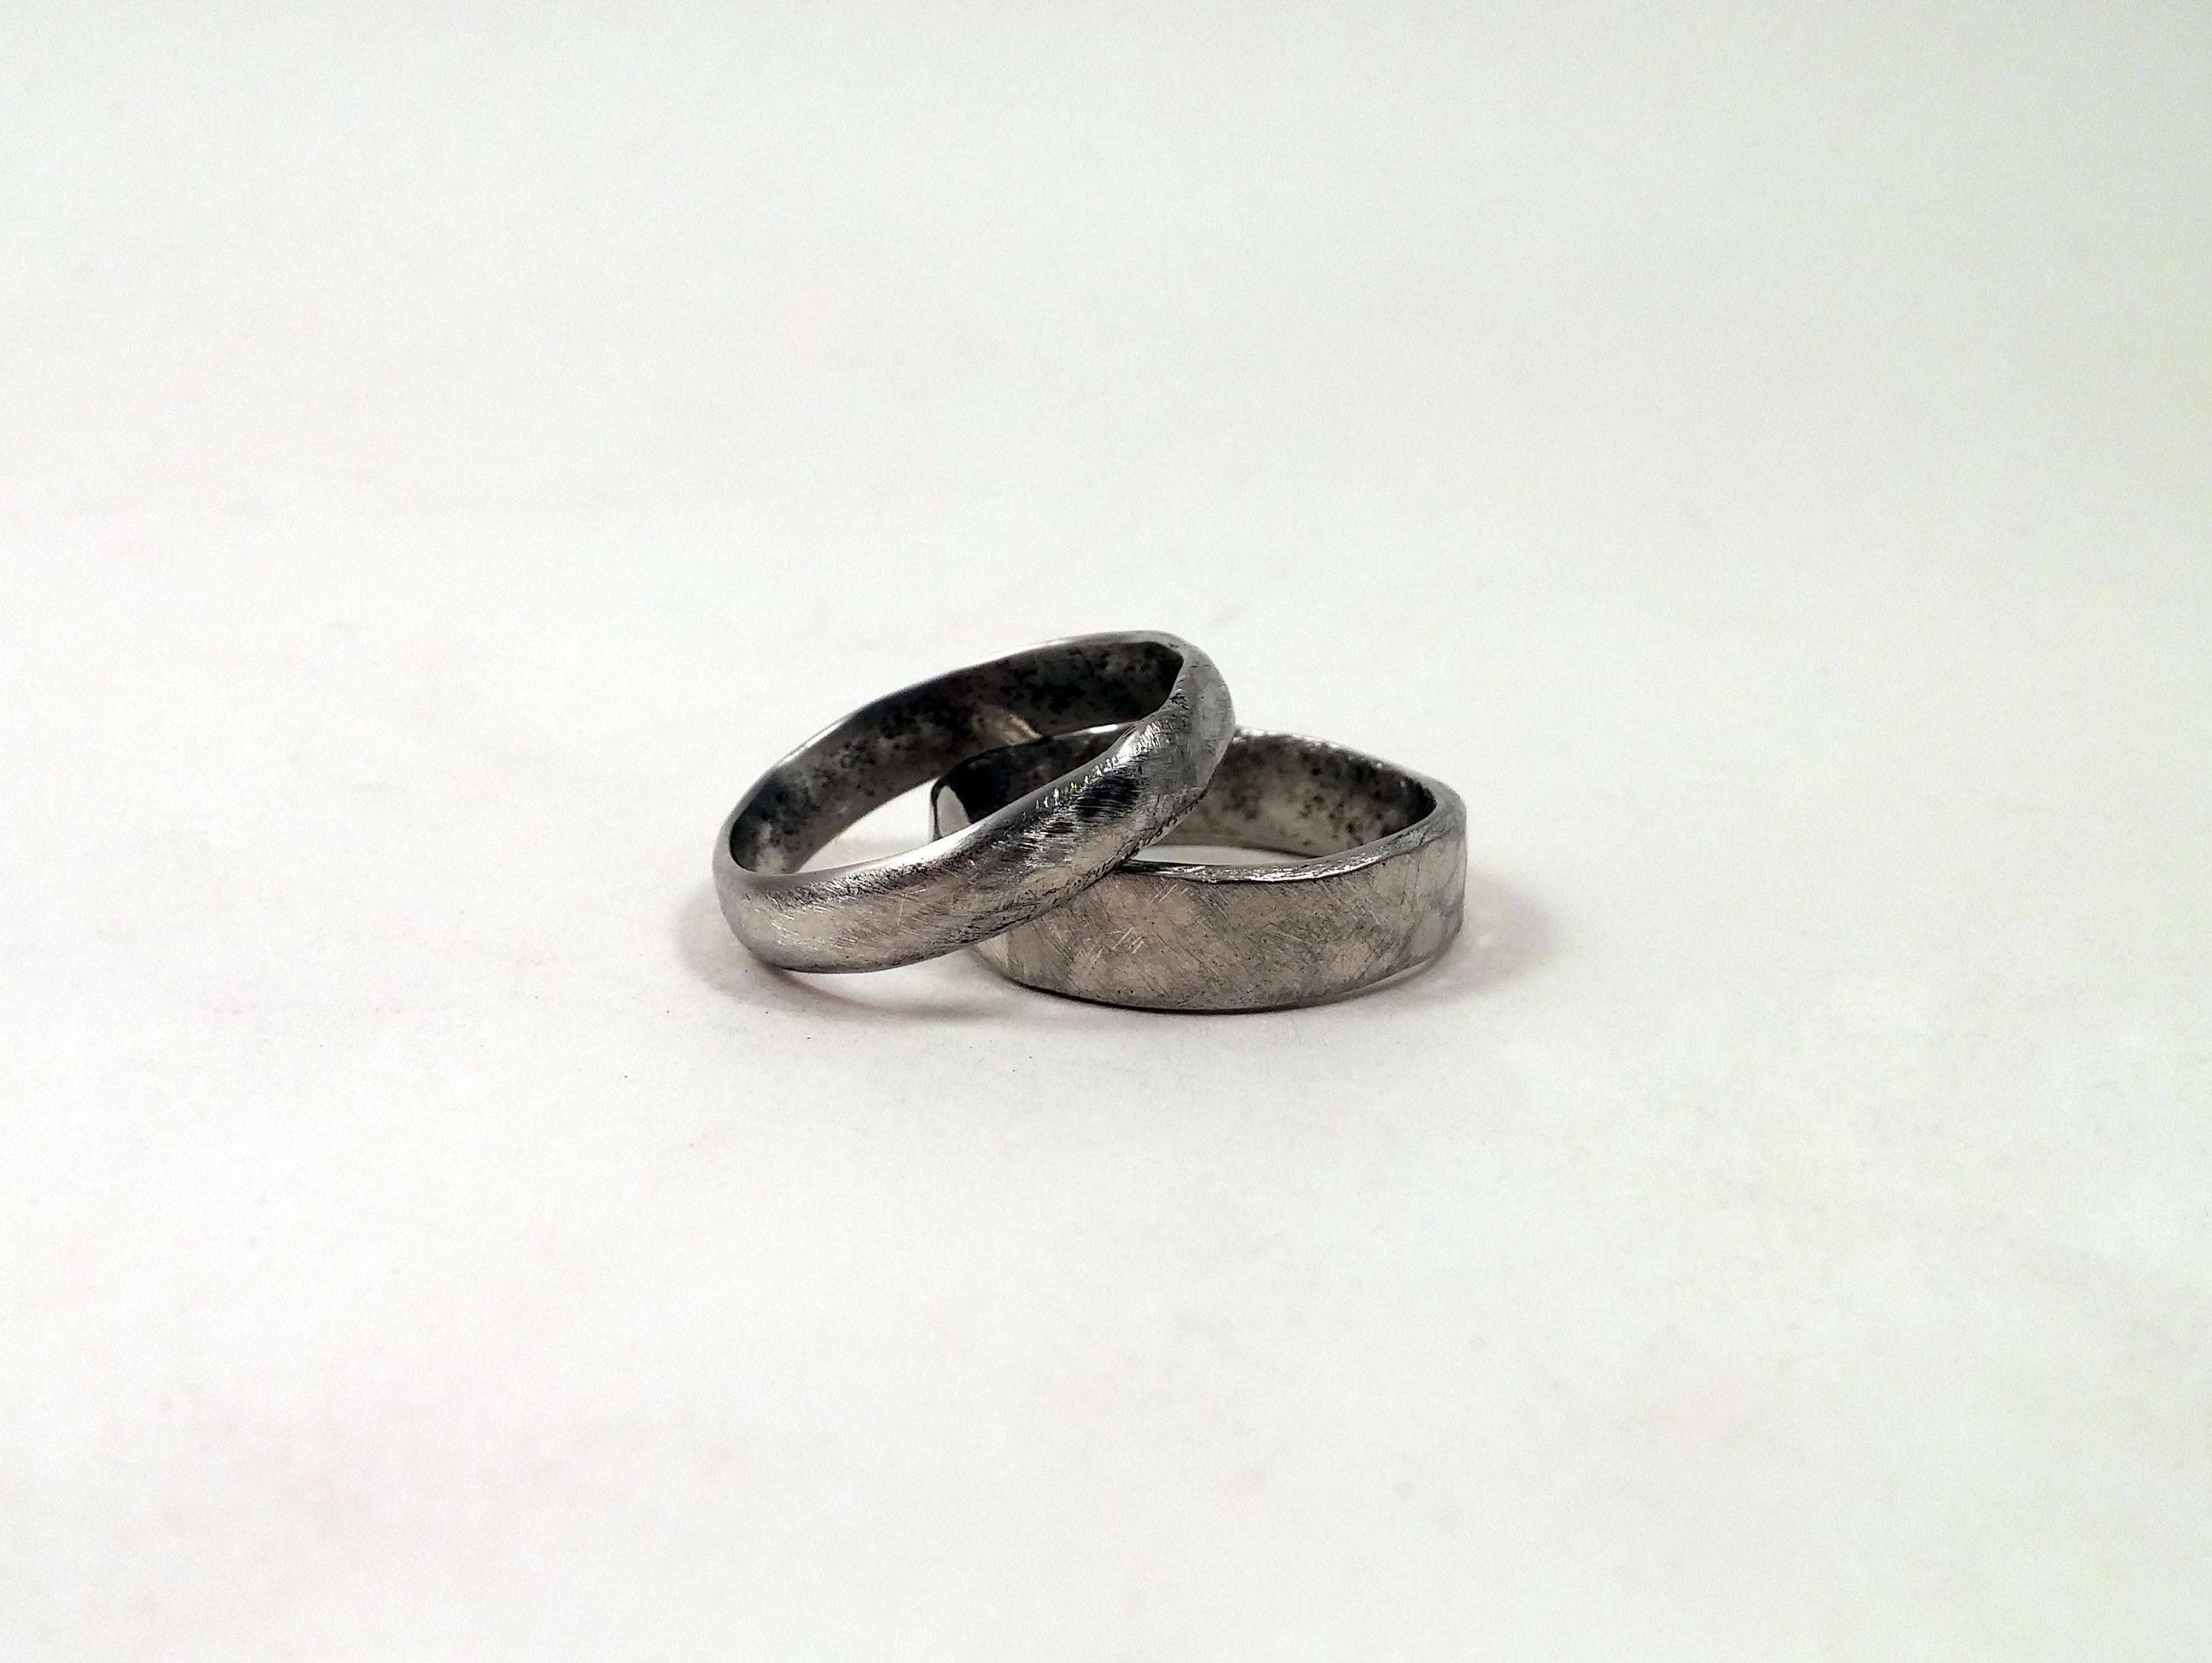 welsh sentinel rings ebay serviette napkin pewter dragon wedding solid itm